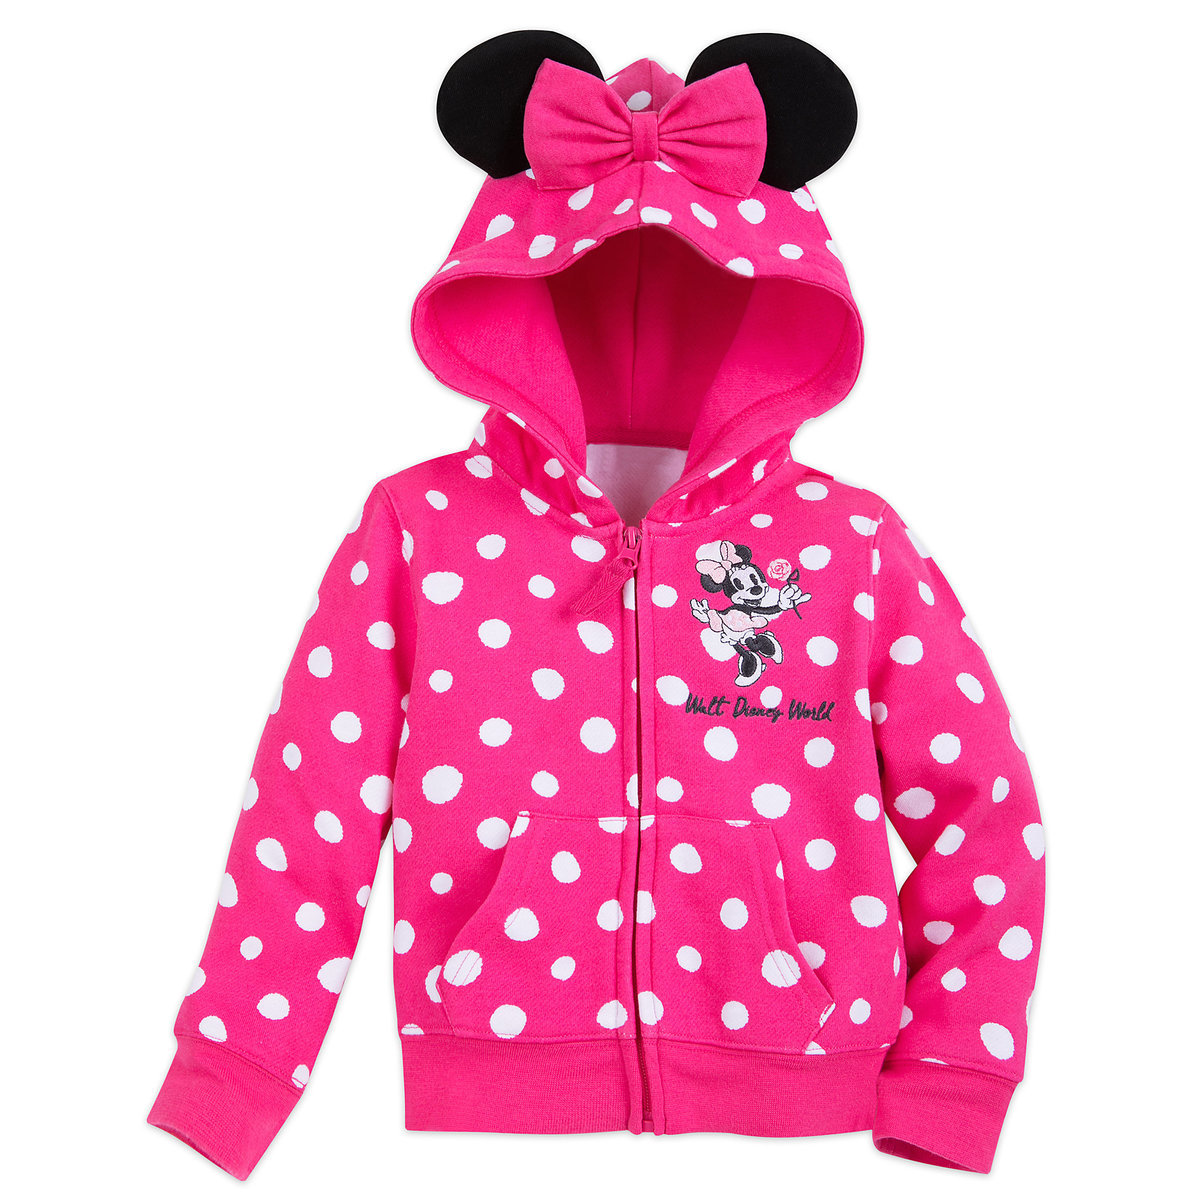 1b264c924 Sweet Minnie Mouse Ears Hoodie for Girls - Walt Disney World ...